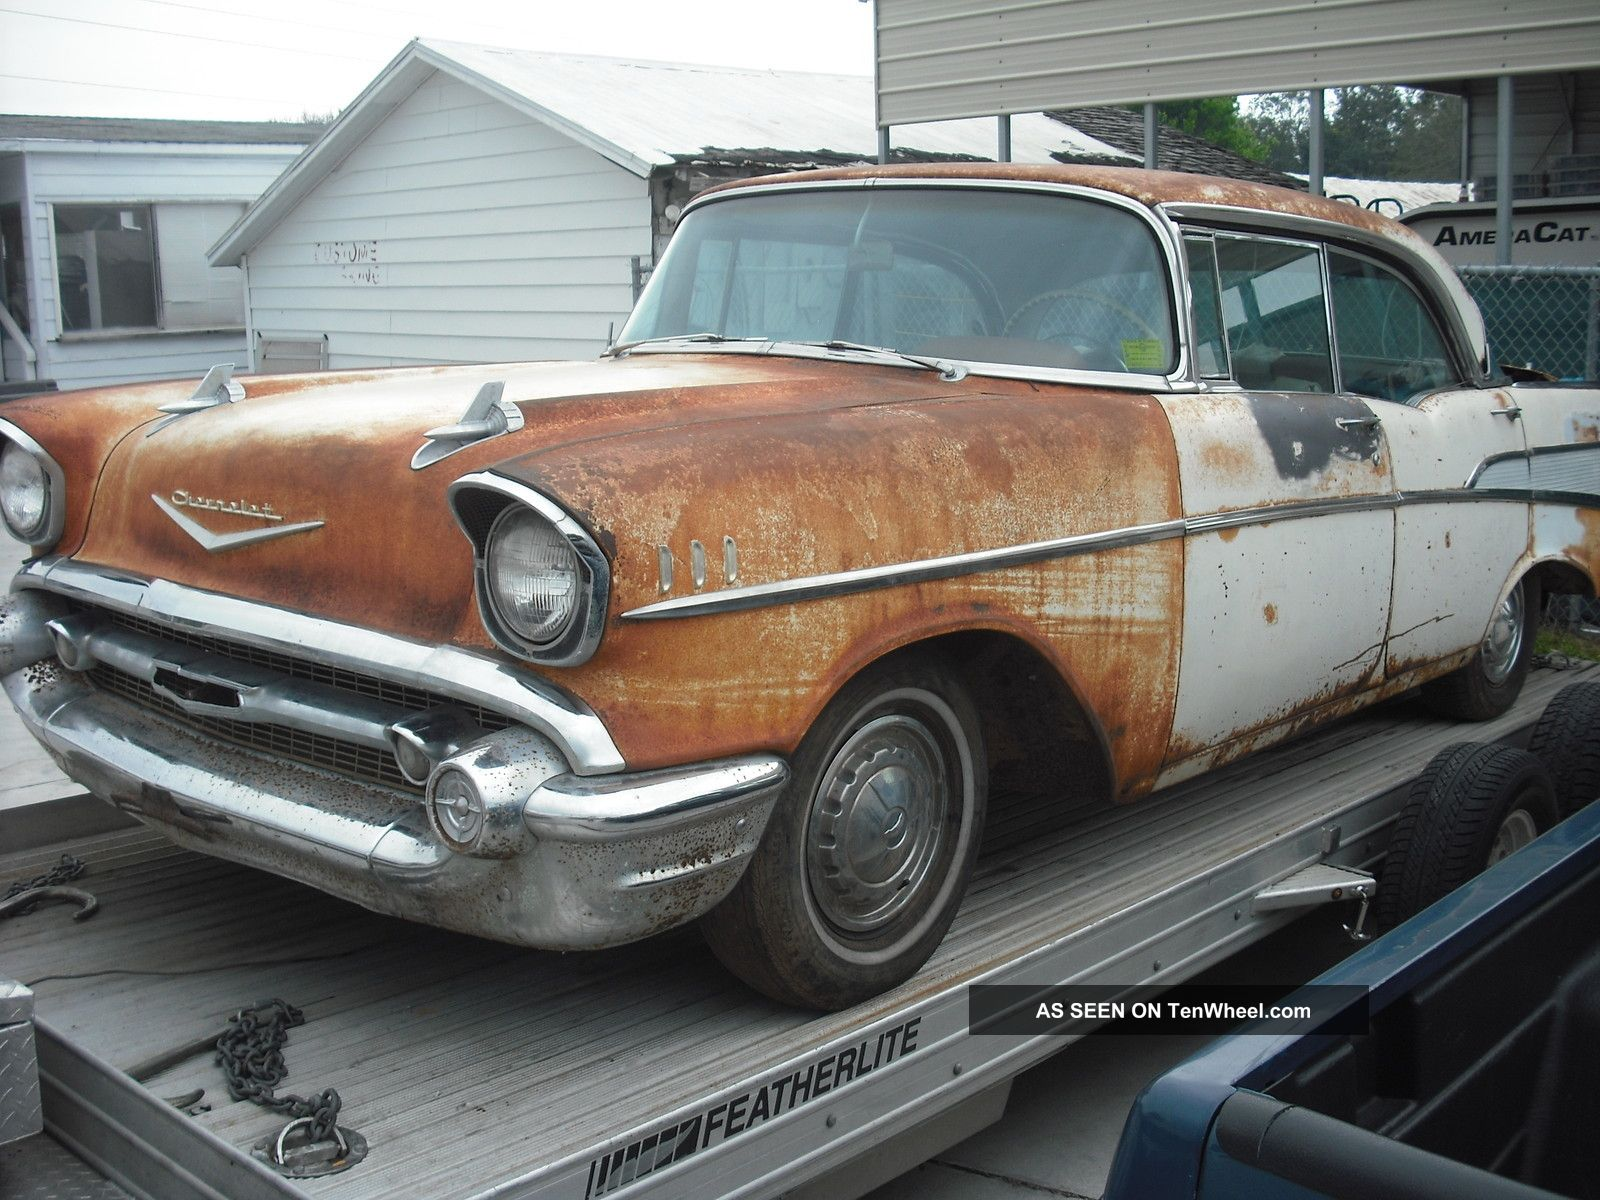 1957 Chevrolet Bel Air,  4dr Hardtop Sport Sedan,  100%,  283,  Ps,  Pb,  Auto Bel Air/150/210 photo